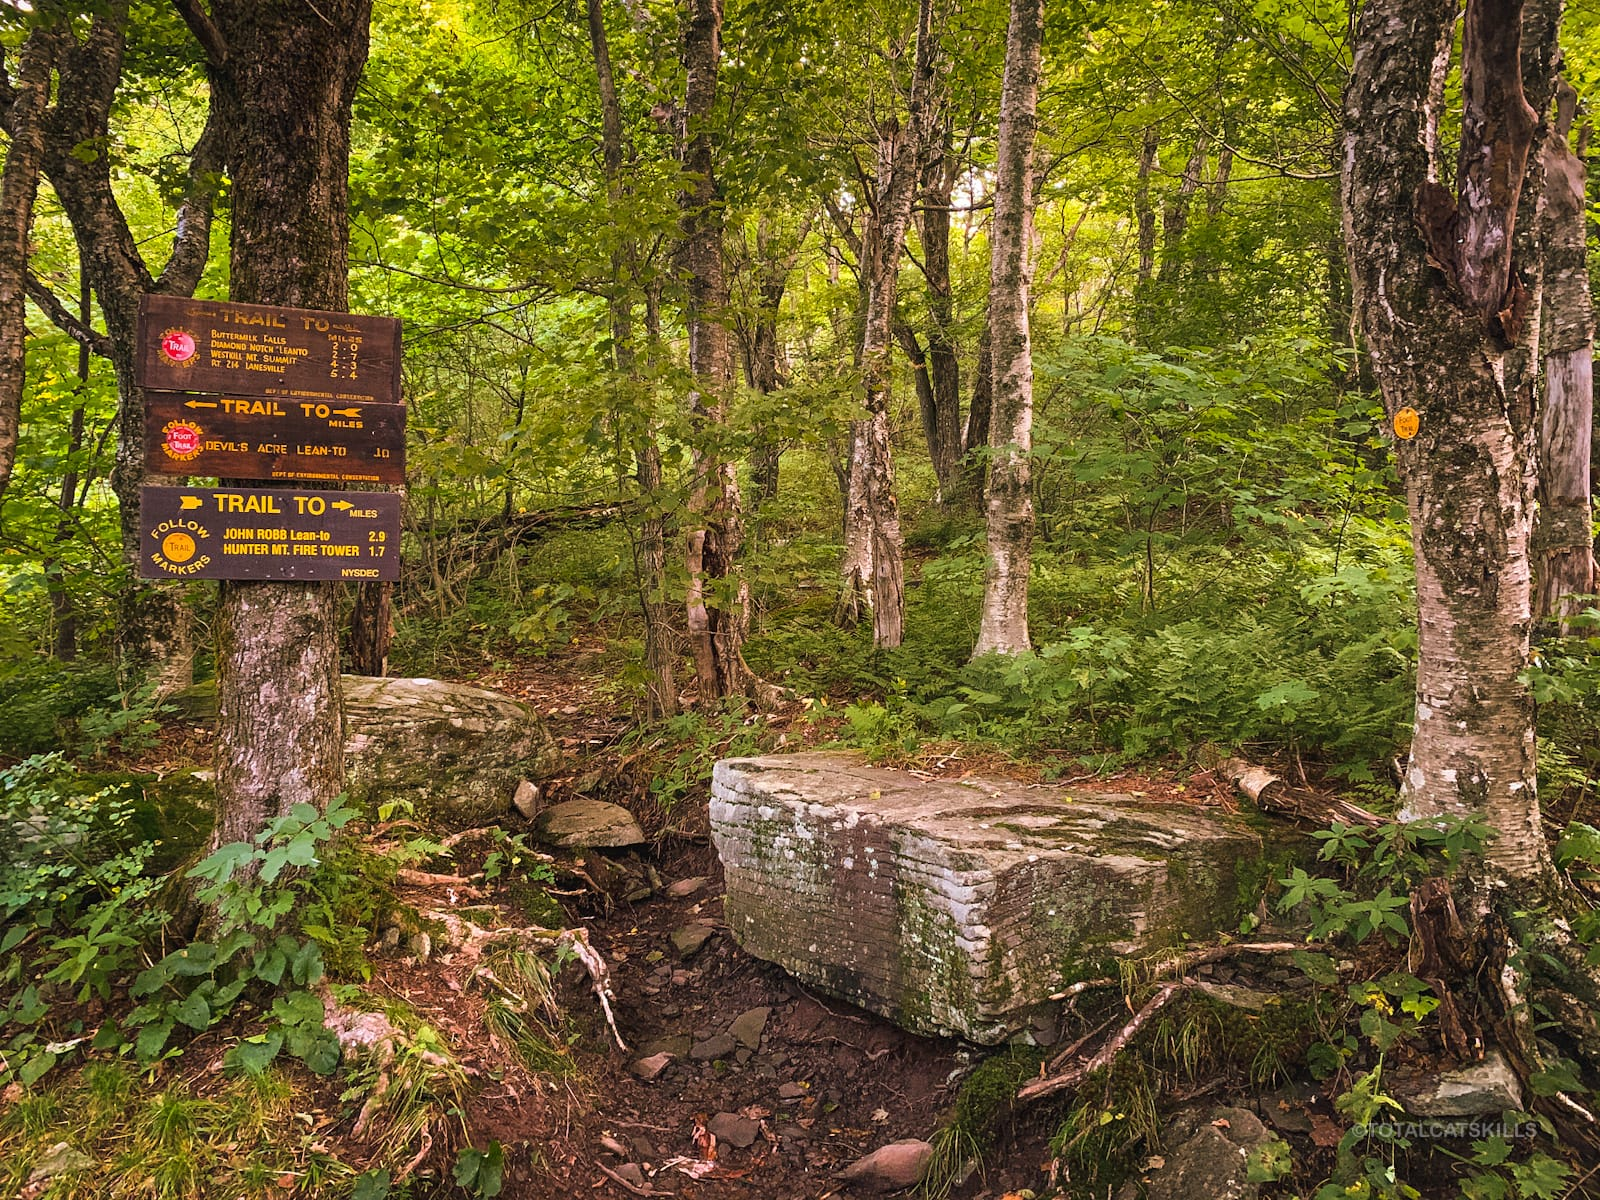 trail junction / trail signs